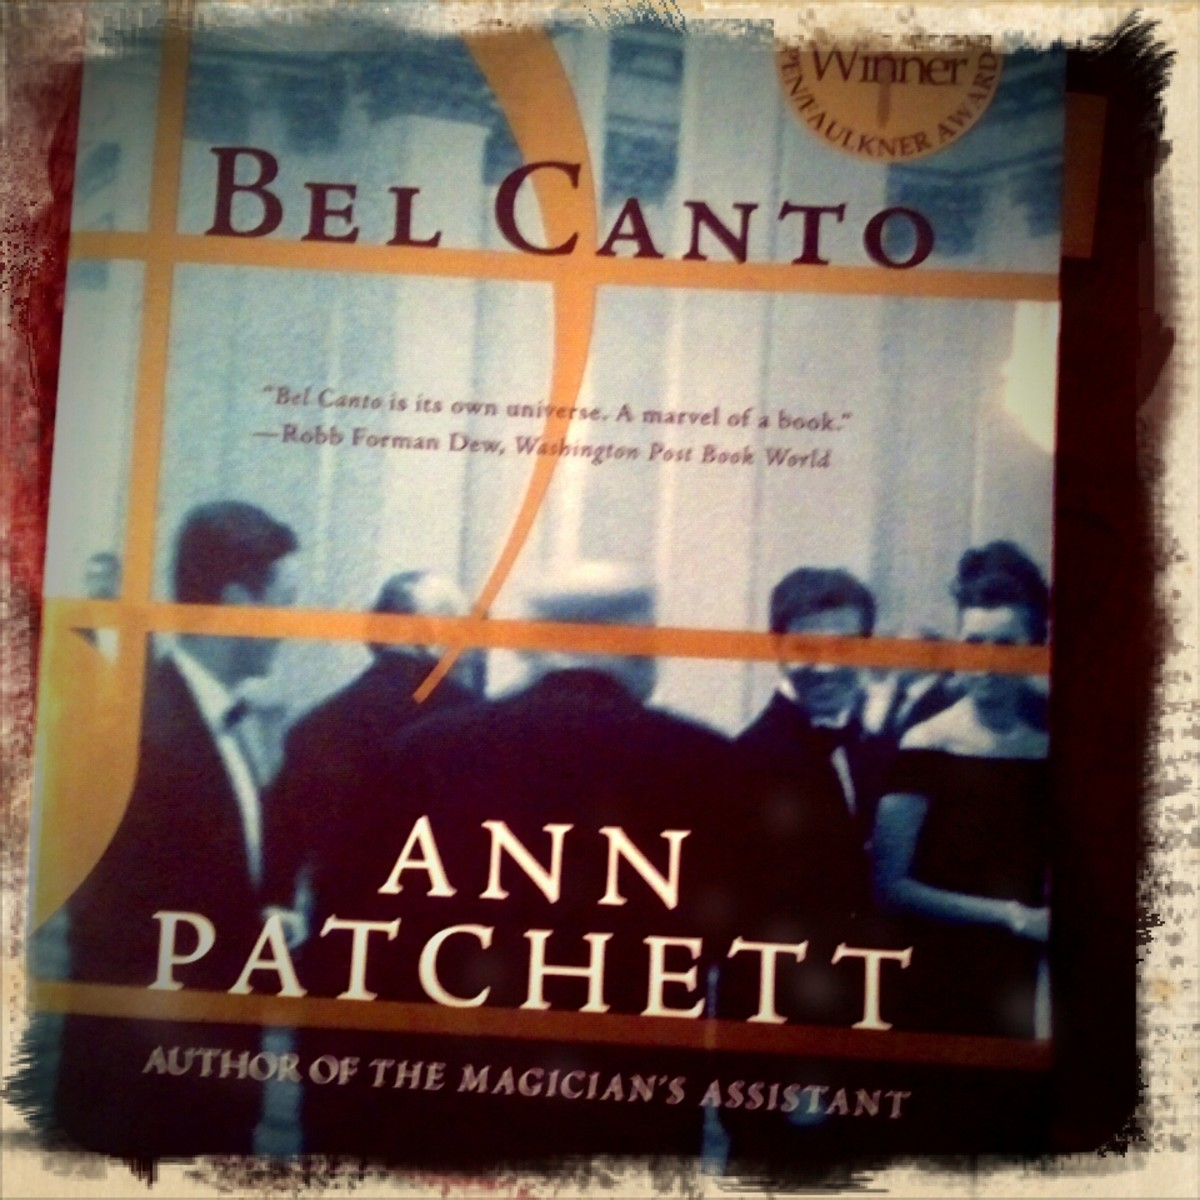 Published in 2001, Bel Canto won the Orange Prize for Fiction and the PEN/Faulkner Award.